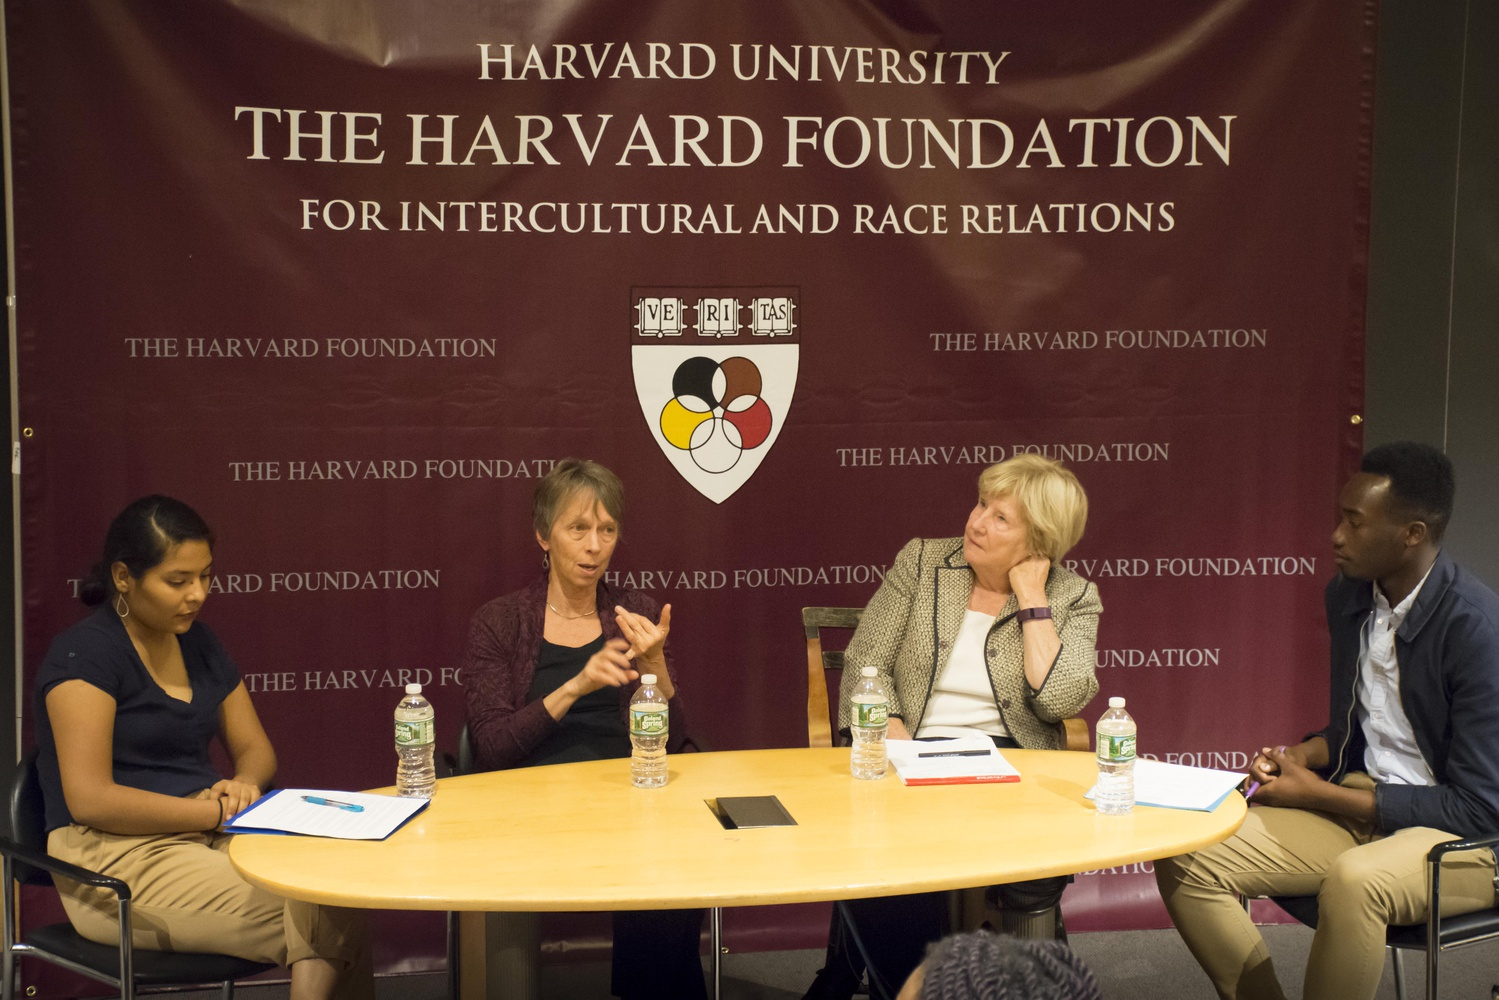 Graduate School of Education Professors Susan Moore Johnson and Katherine K. Merseth discuss Massachusetts' charter school ballot measure as Harvard Foundation members Nuha Saho '18 and Brenda Esqueda '20 look on. The panel discussion on equity and access in education was hosted by the Harvard Foundation Tuesday night.